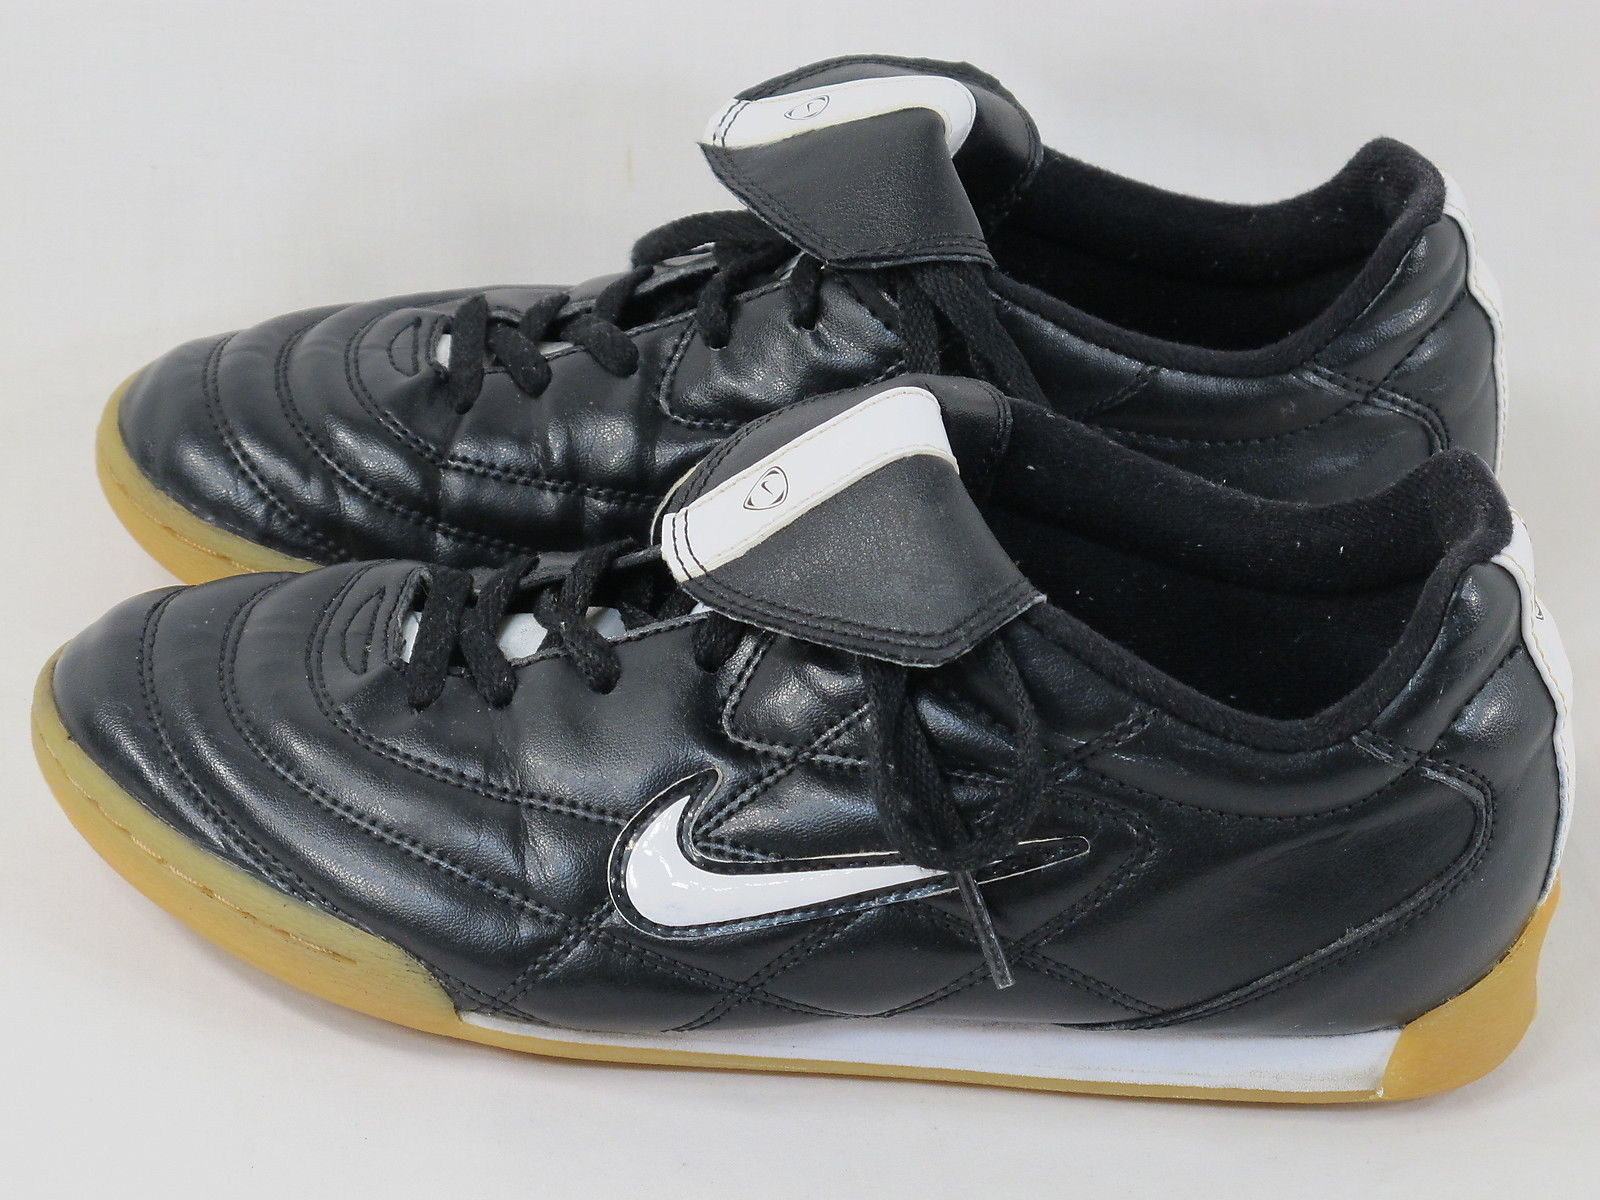 cfb1c6e2c Nike Tiempo 750 Black & White Leather Indoor Soccer Cleats Boy's Size 5 US  Shoes